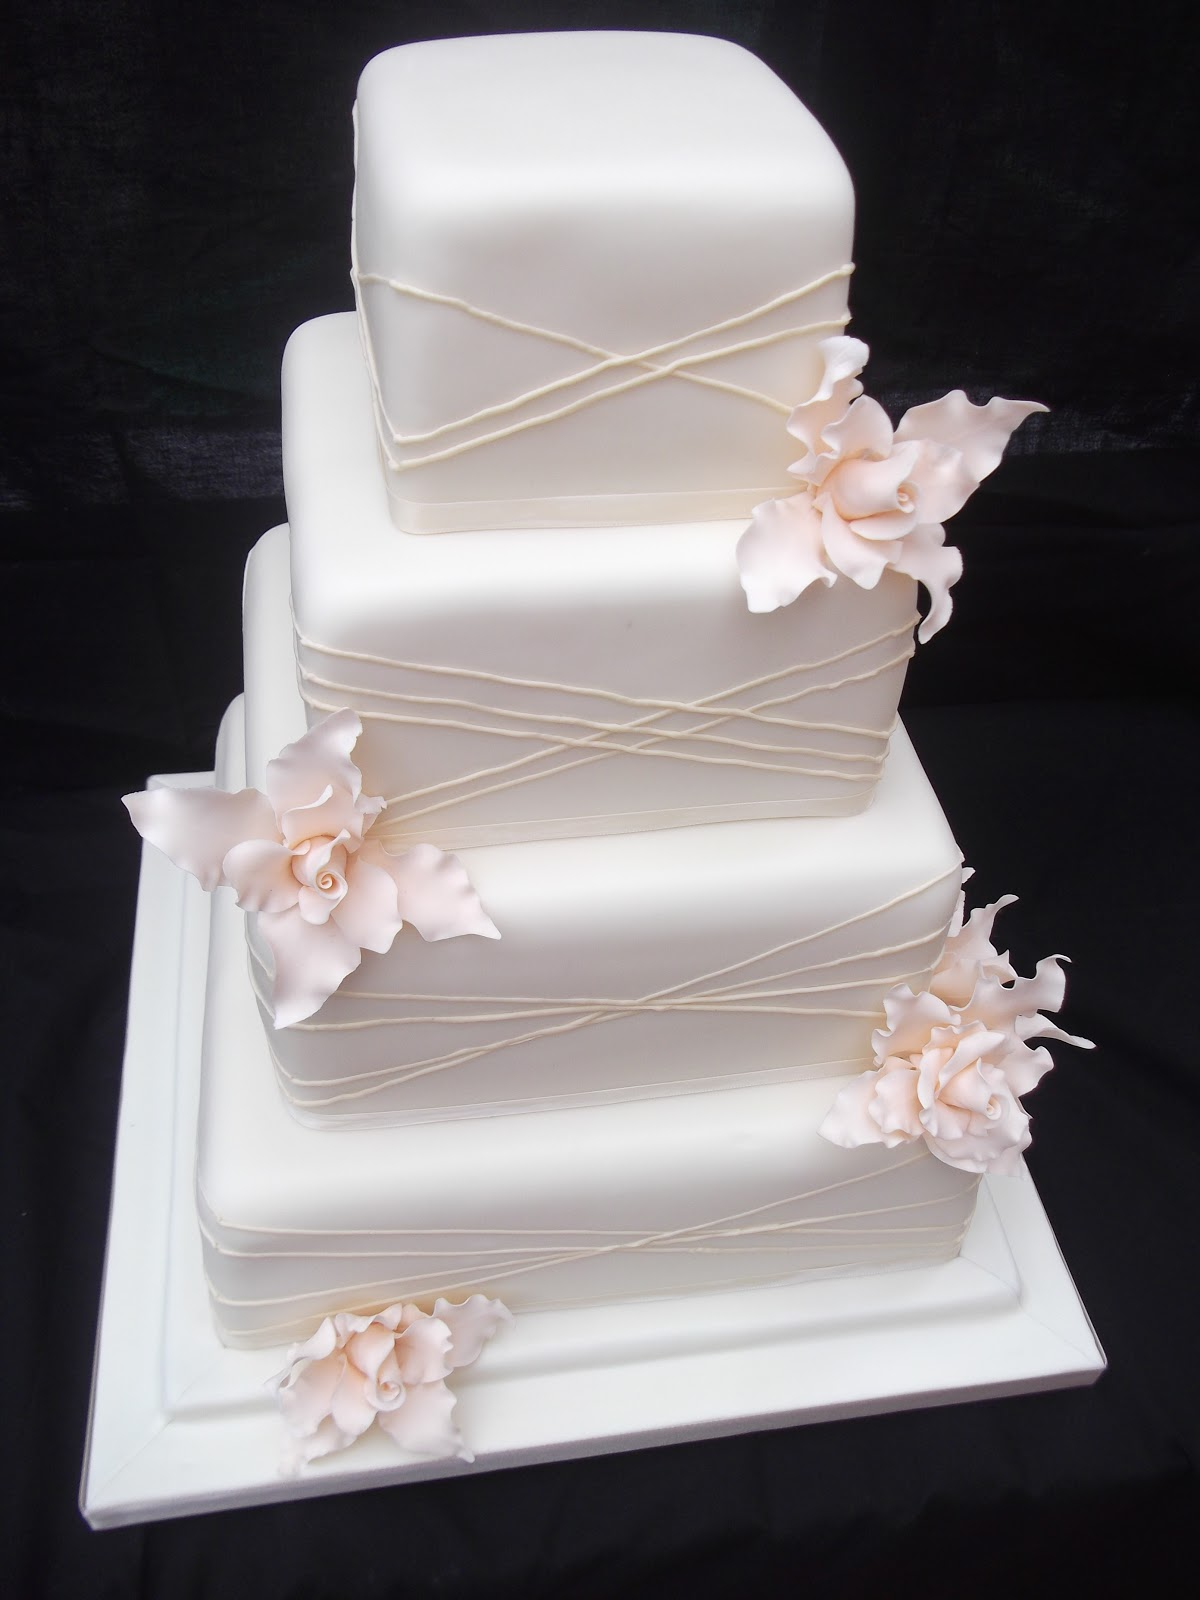 Cakes By Karen Ivory wedding cake with champagne flowers